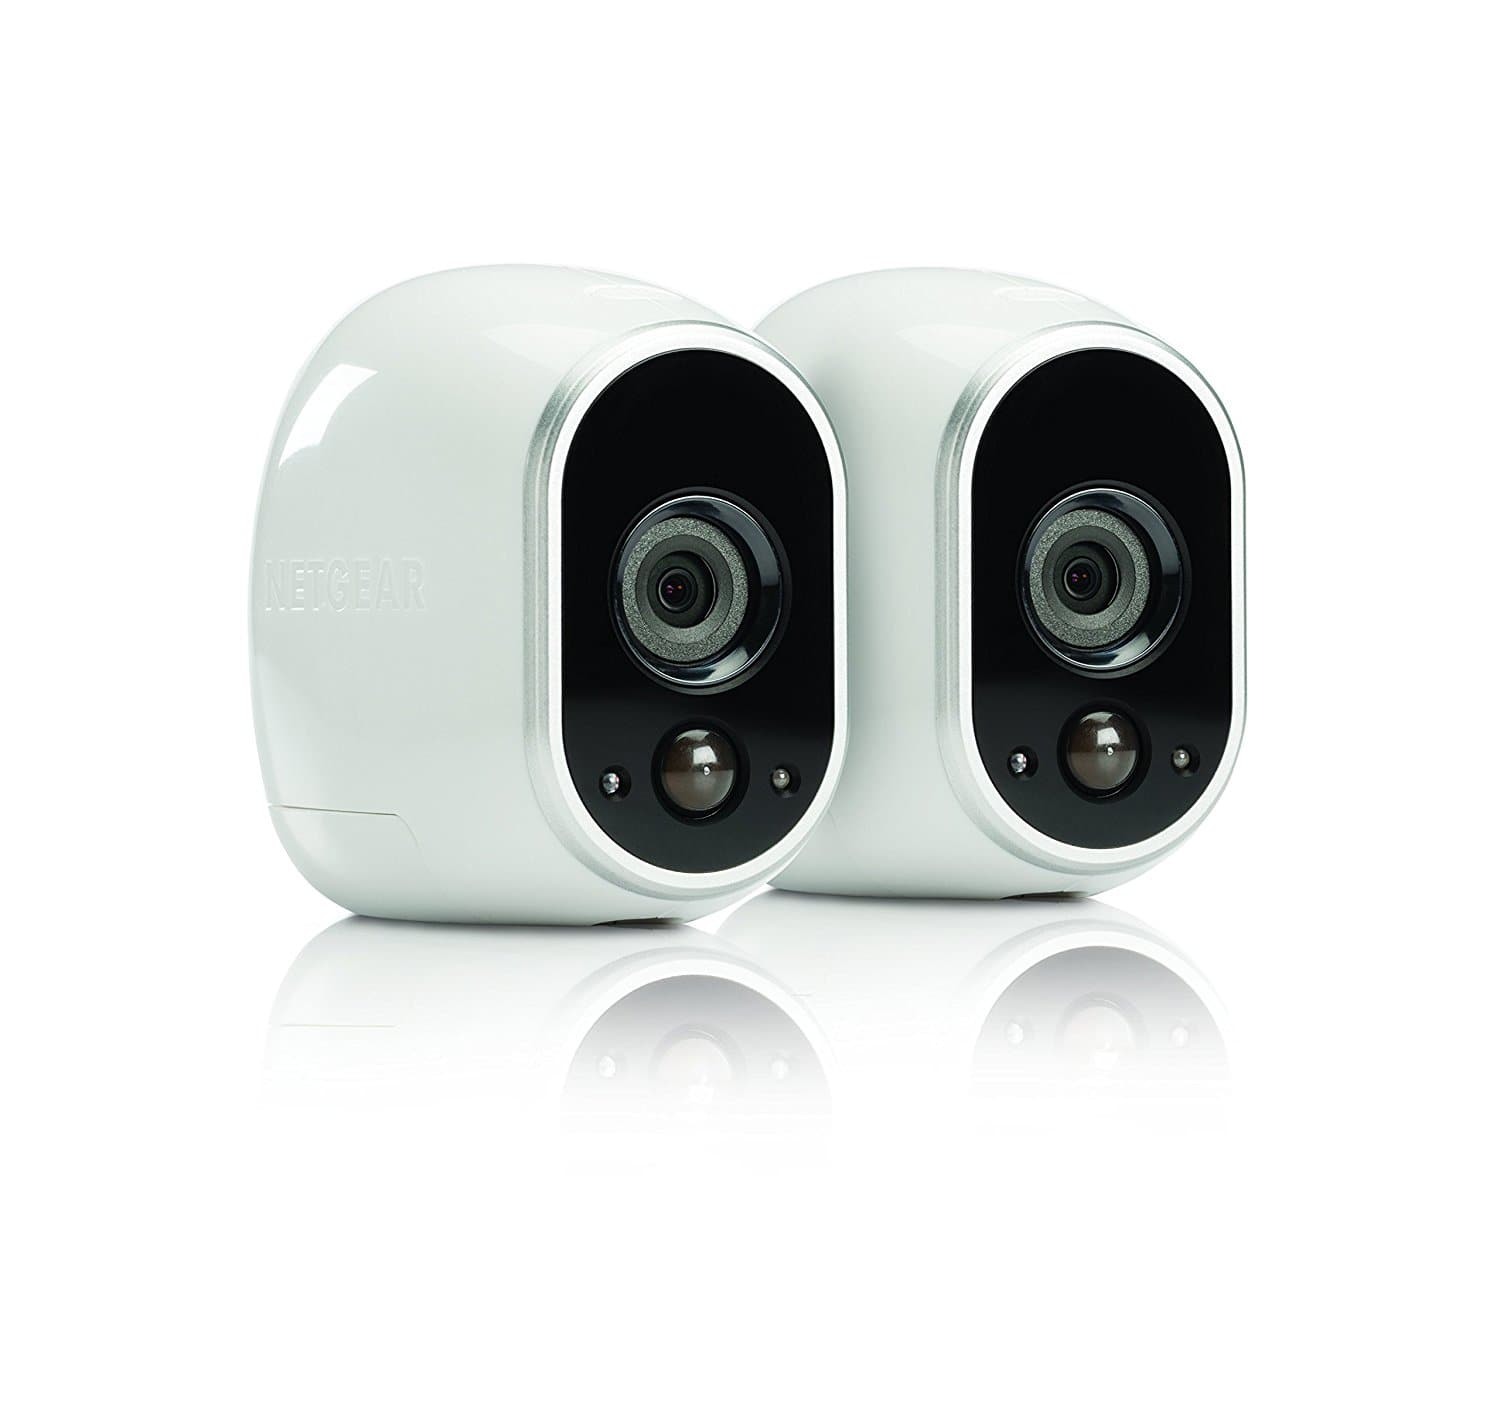 Arlo Security By Netgear - 2 Wire Free HD Cams $162 + Free Shipping